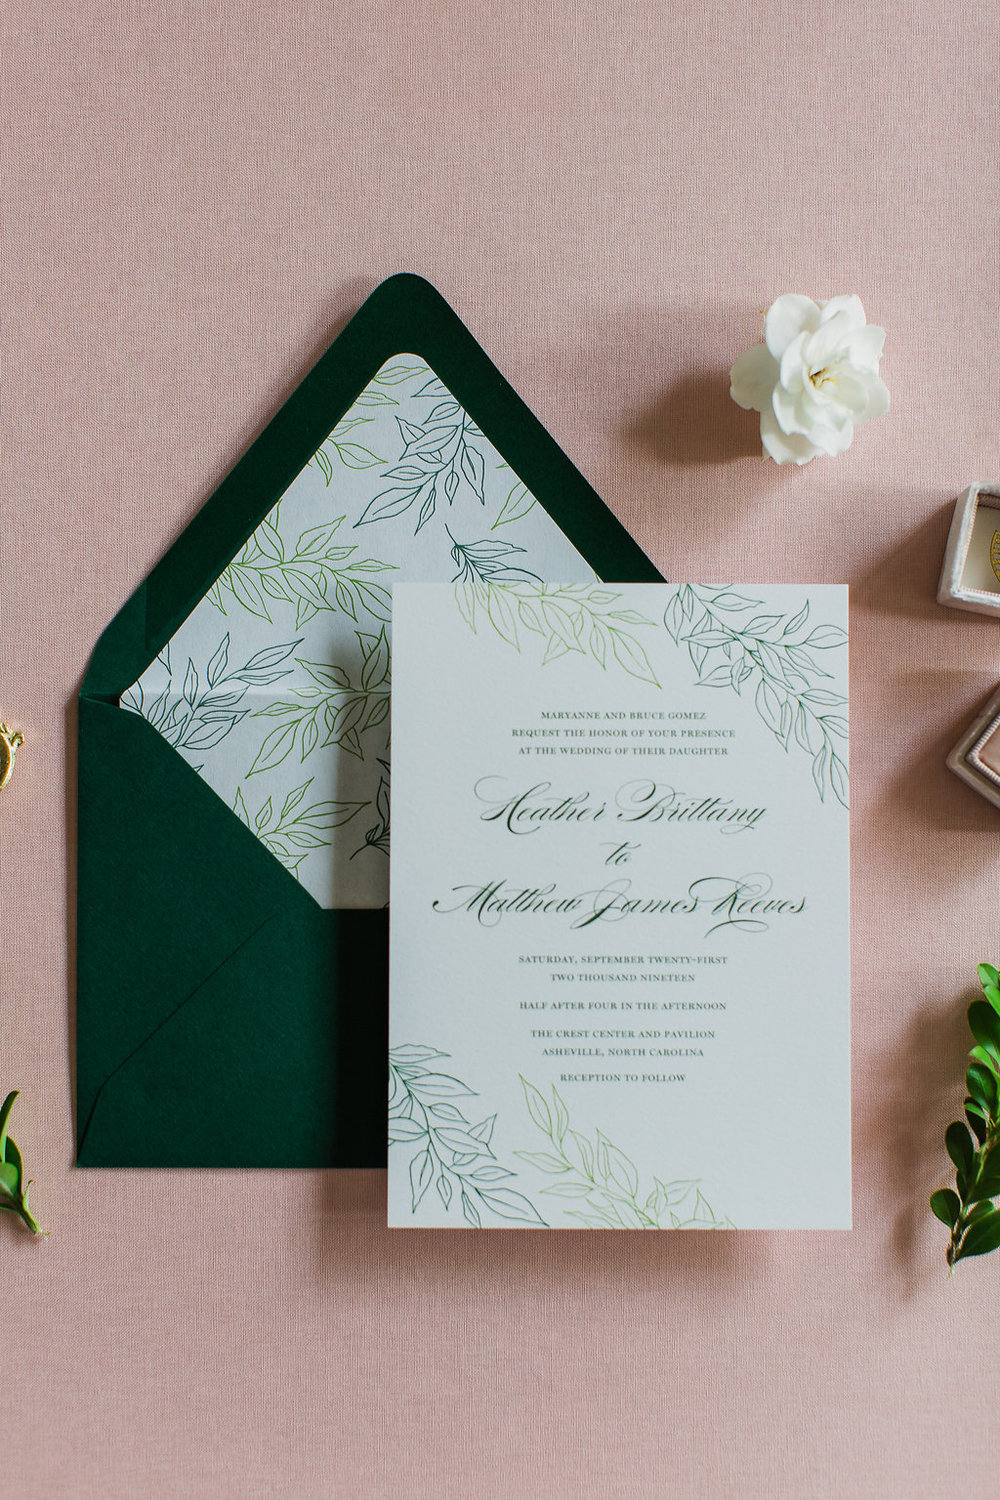 Heather Hand Drawn Wedding Invitation Greenery Feathered Heart PrintsFHP-36.jpg